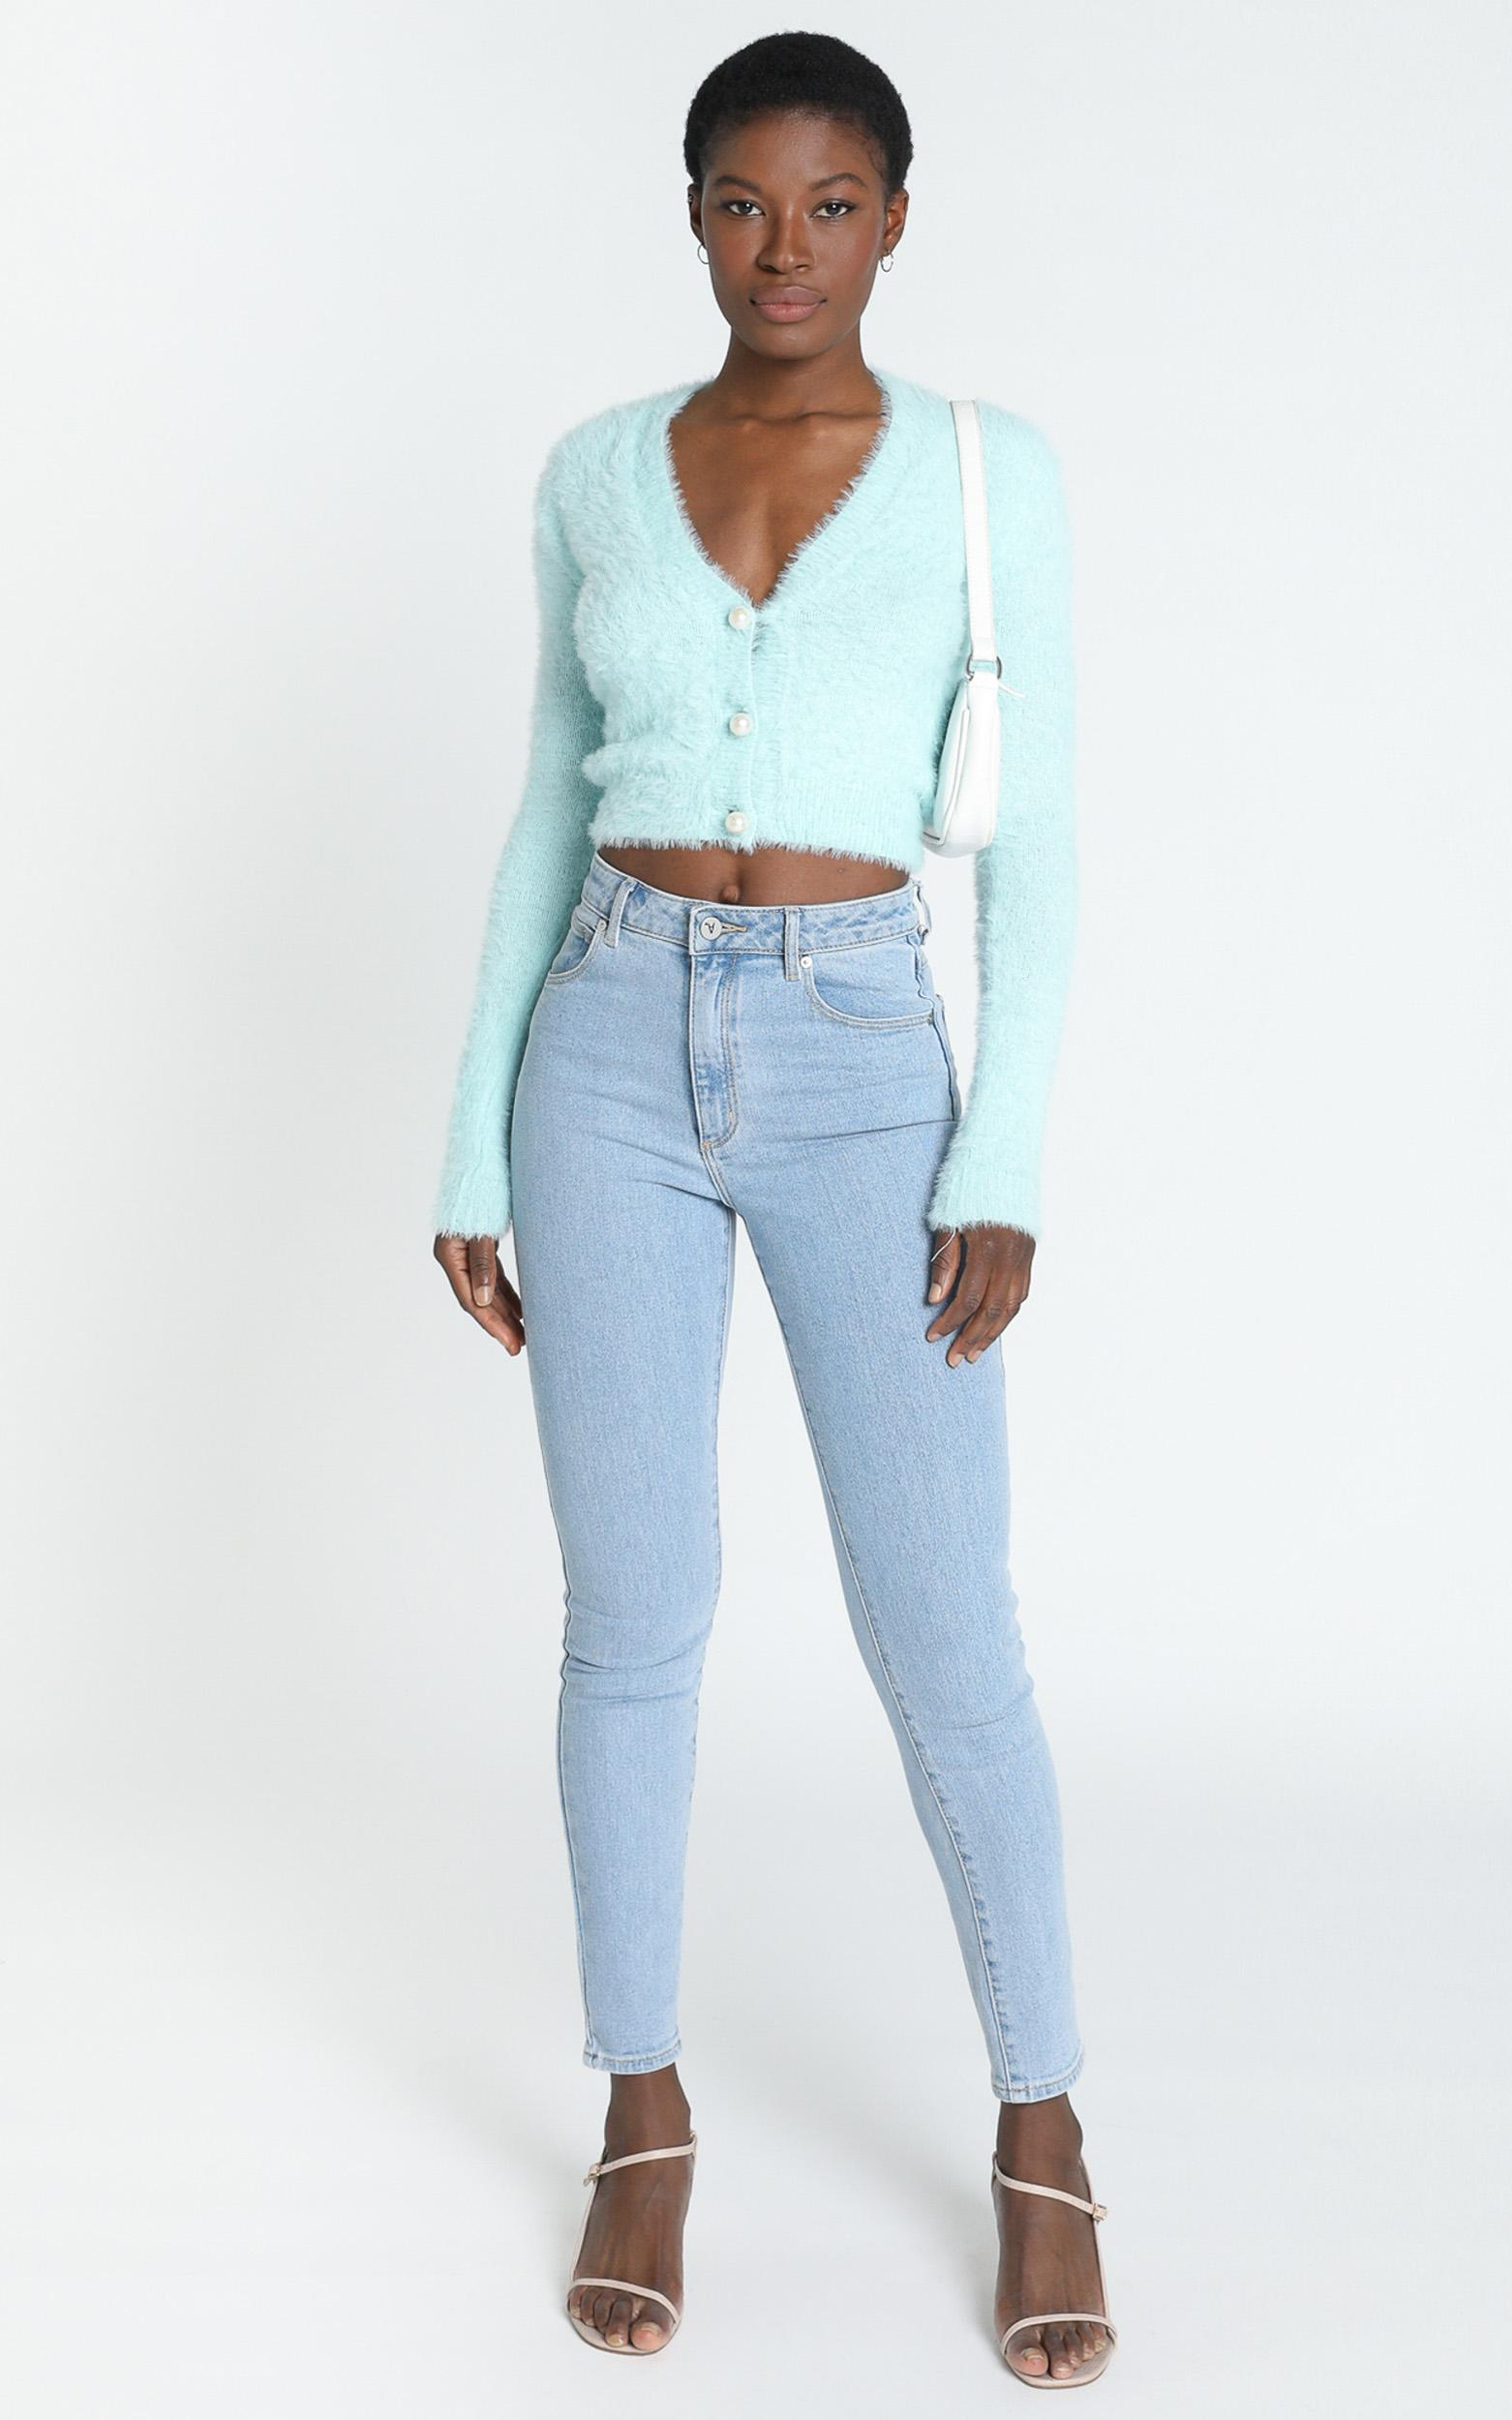 Vegas Baby Knit Top in Ice Blue- 20 (XXXXL), Blue, hi-res image number null